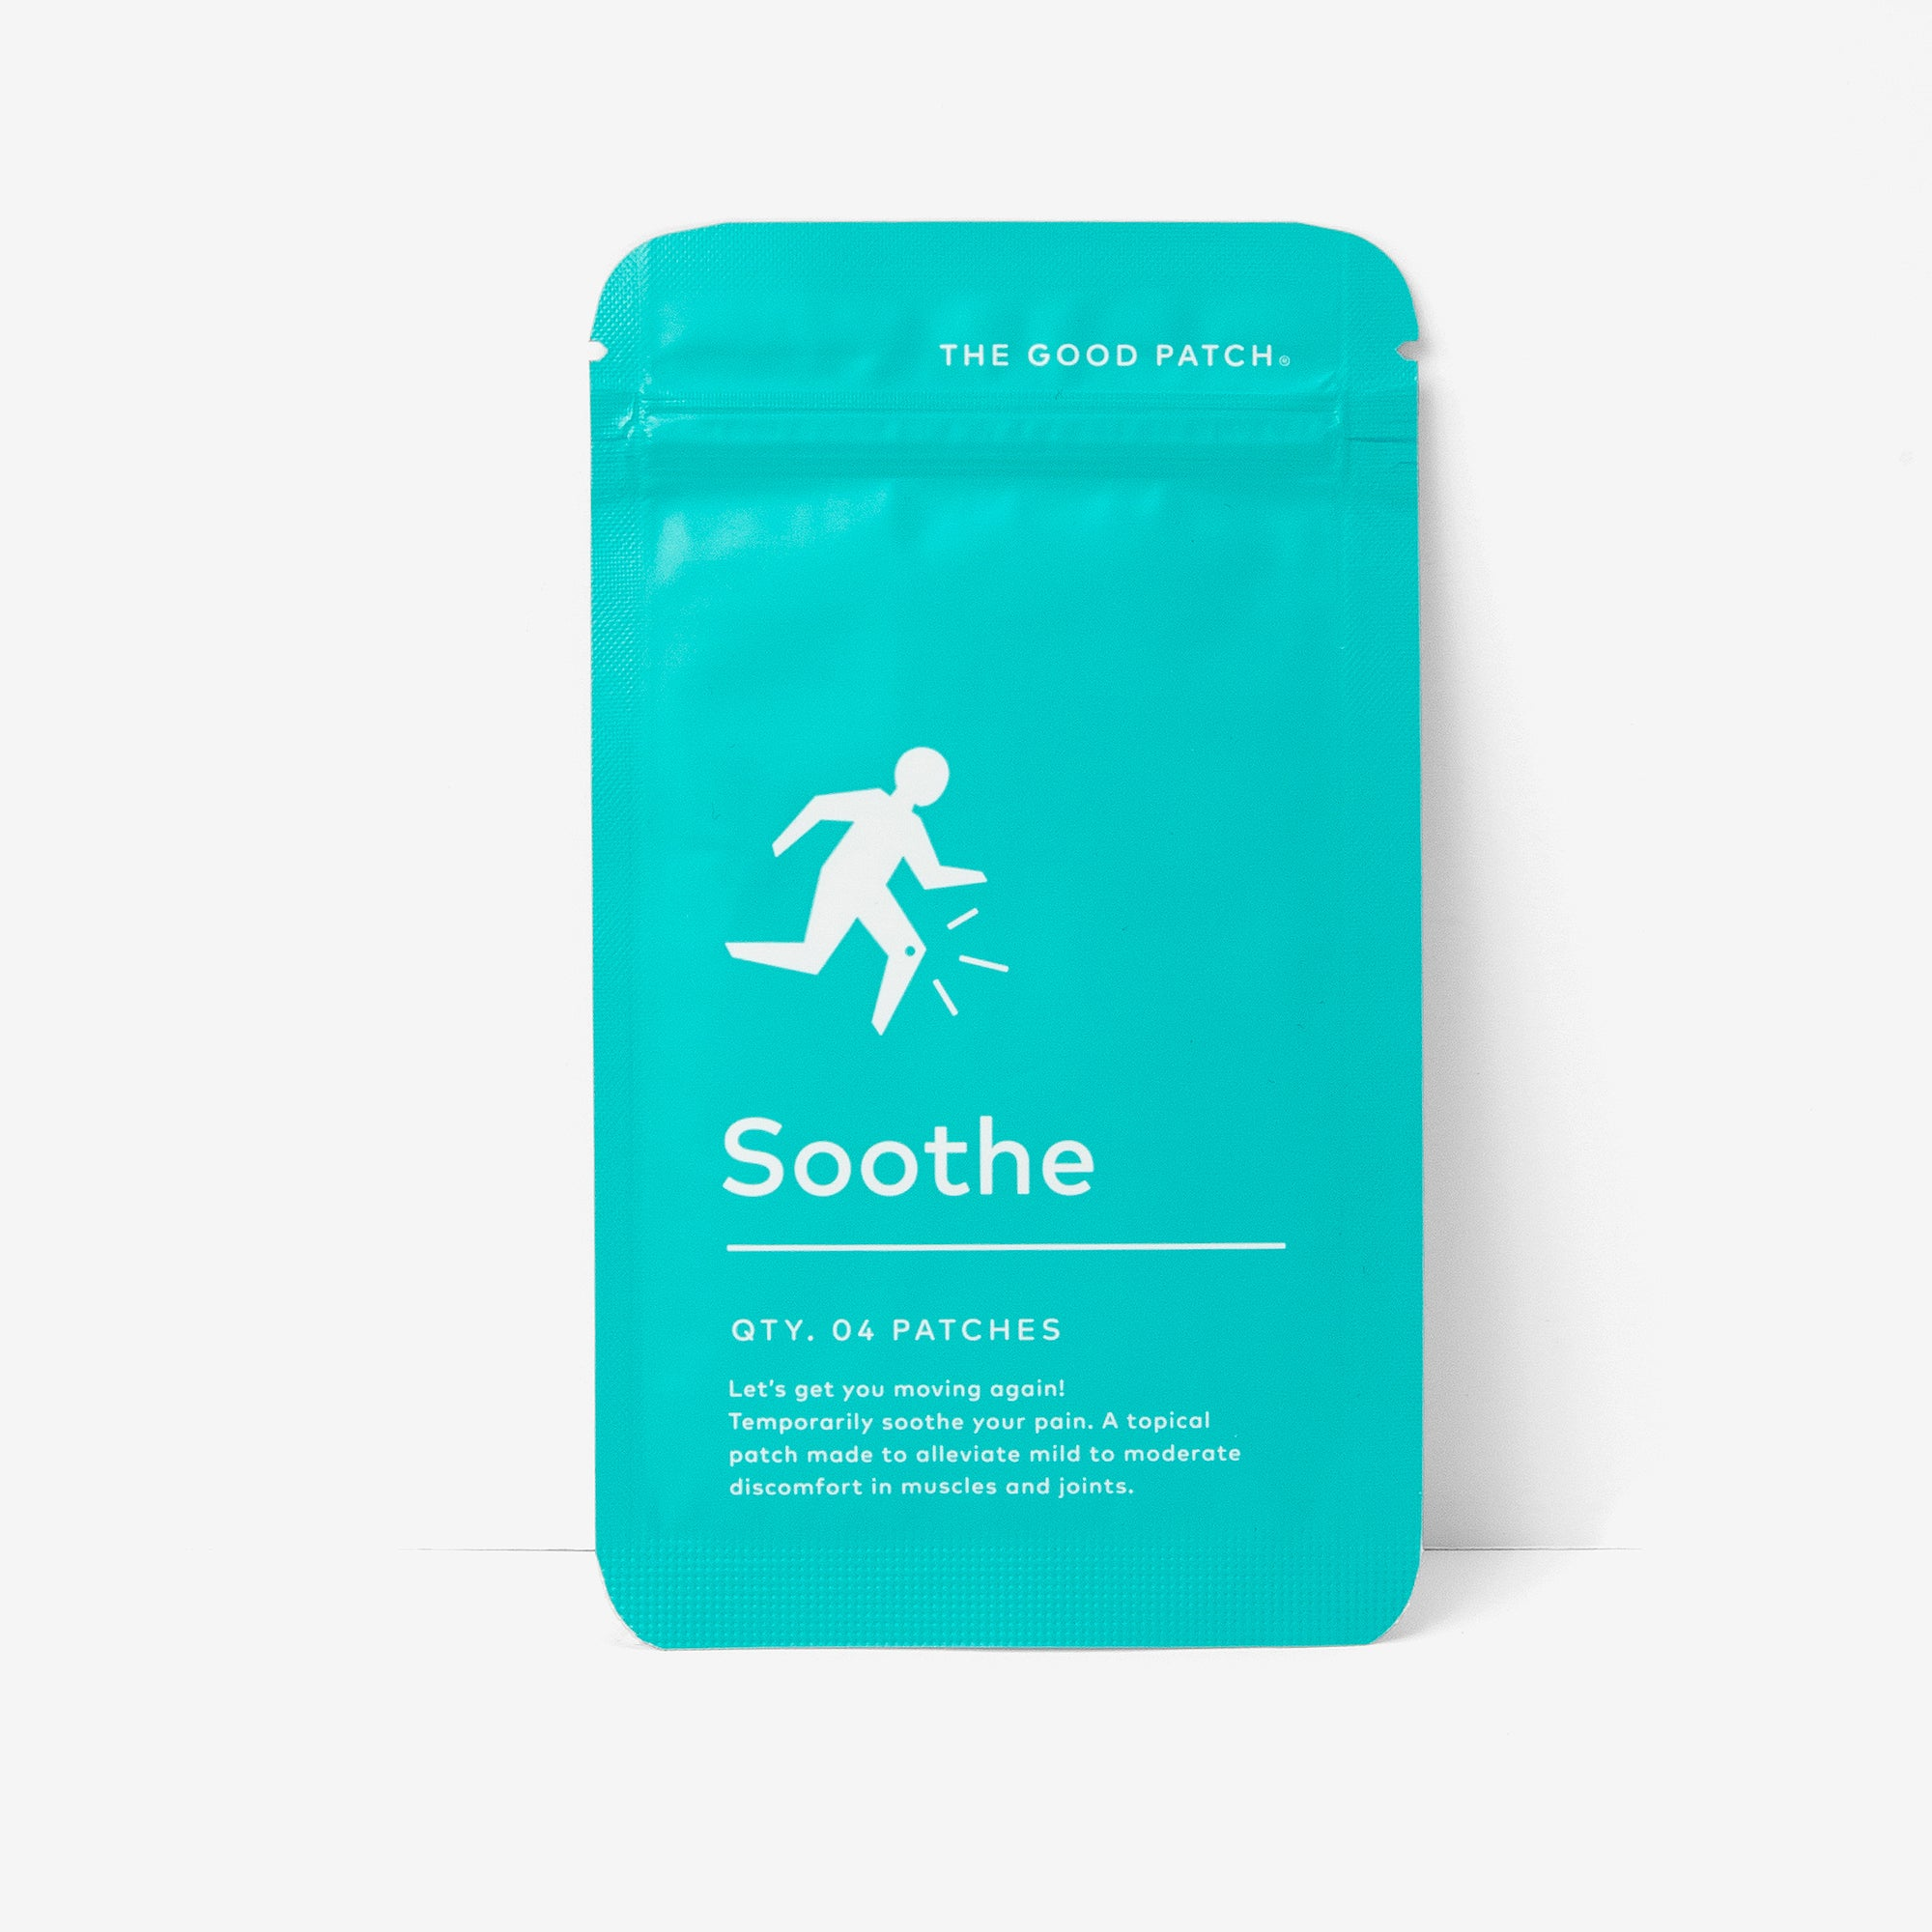 Soothe - The Good Patch